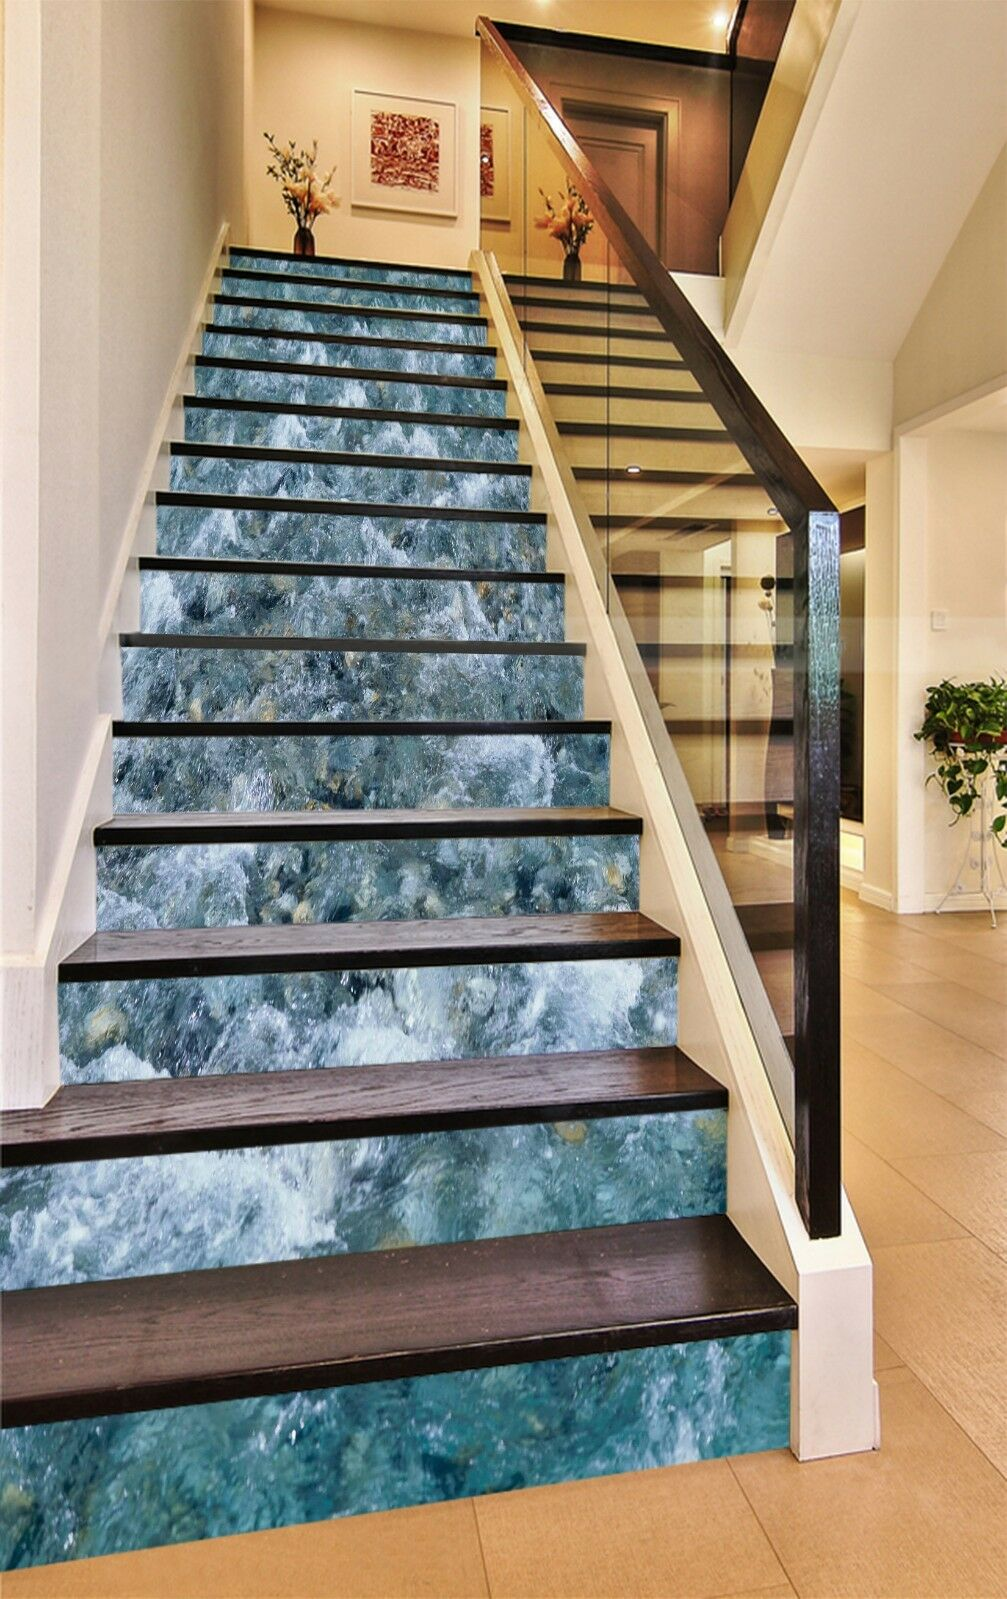 3D Ocean Pattern 5 Stair Risers Decoration Photo Mural Vinyl Decal Wallpaper CA